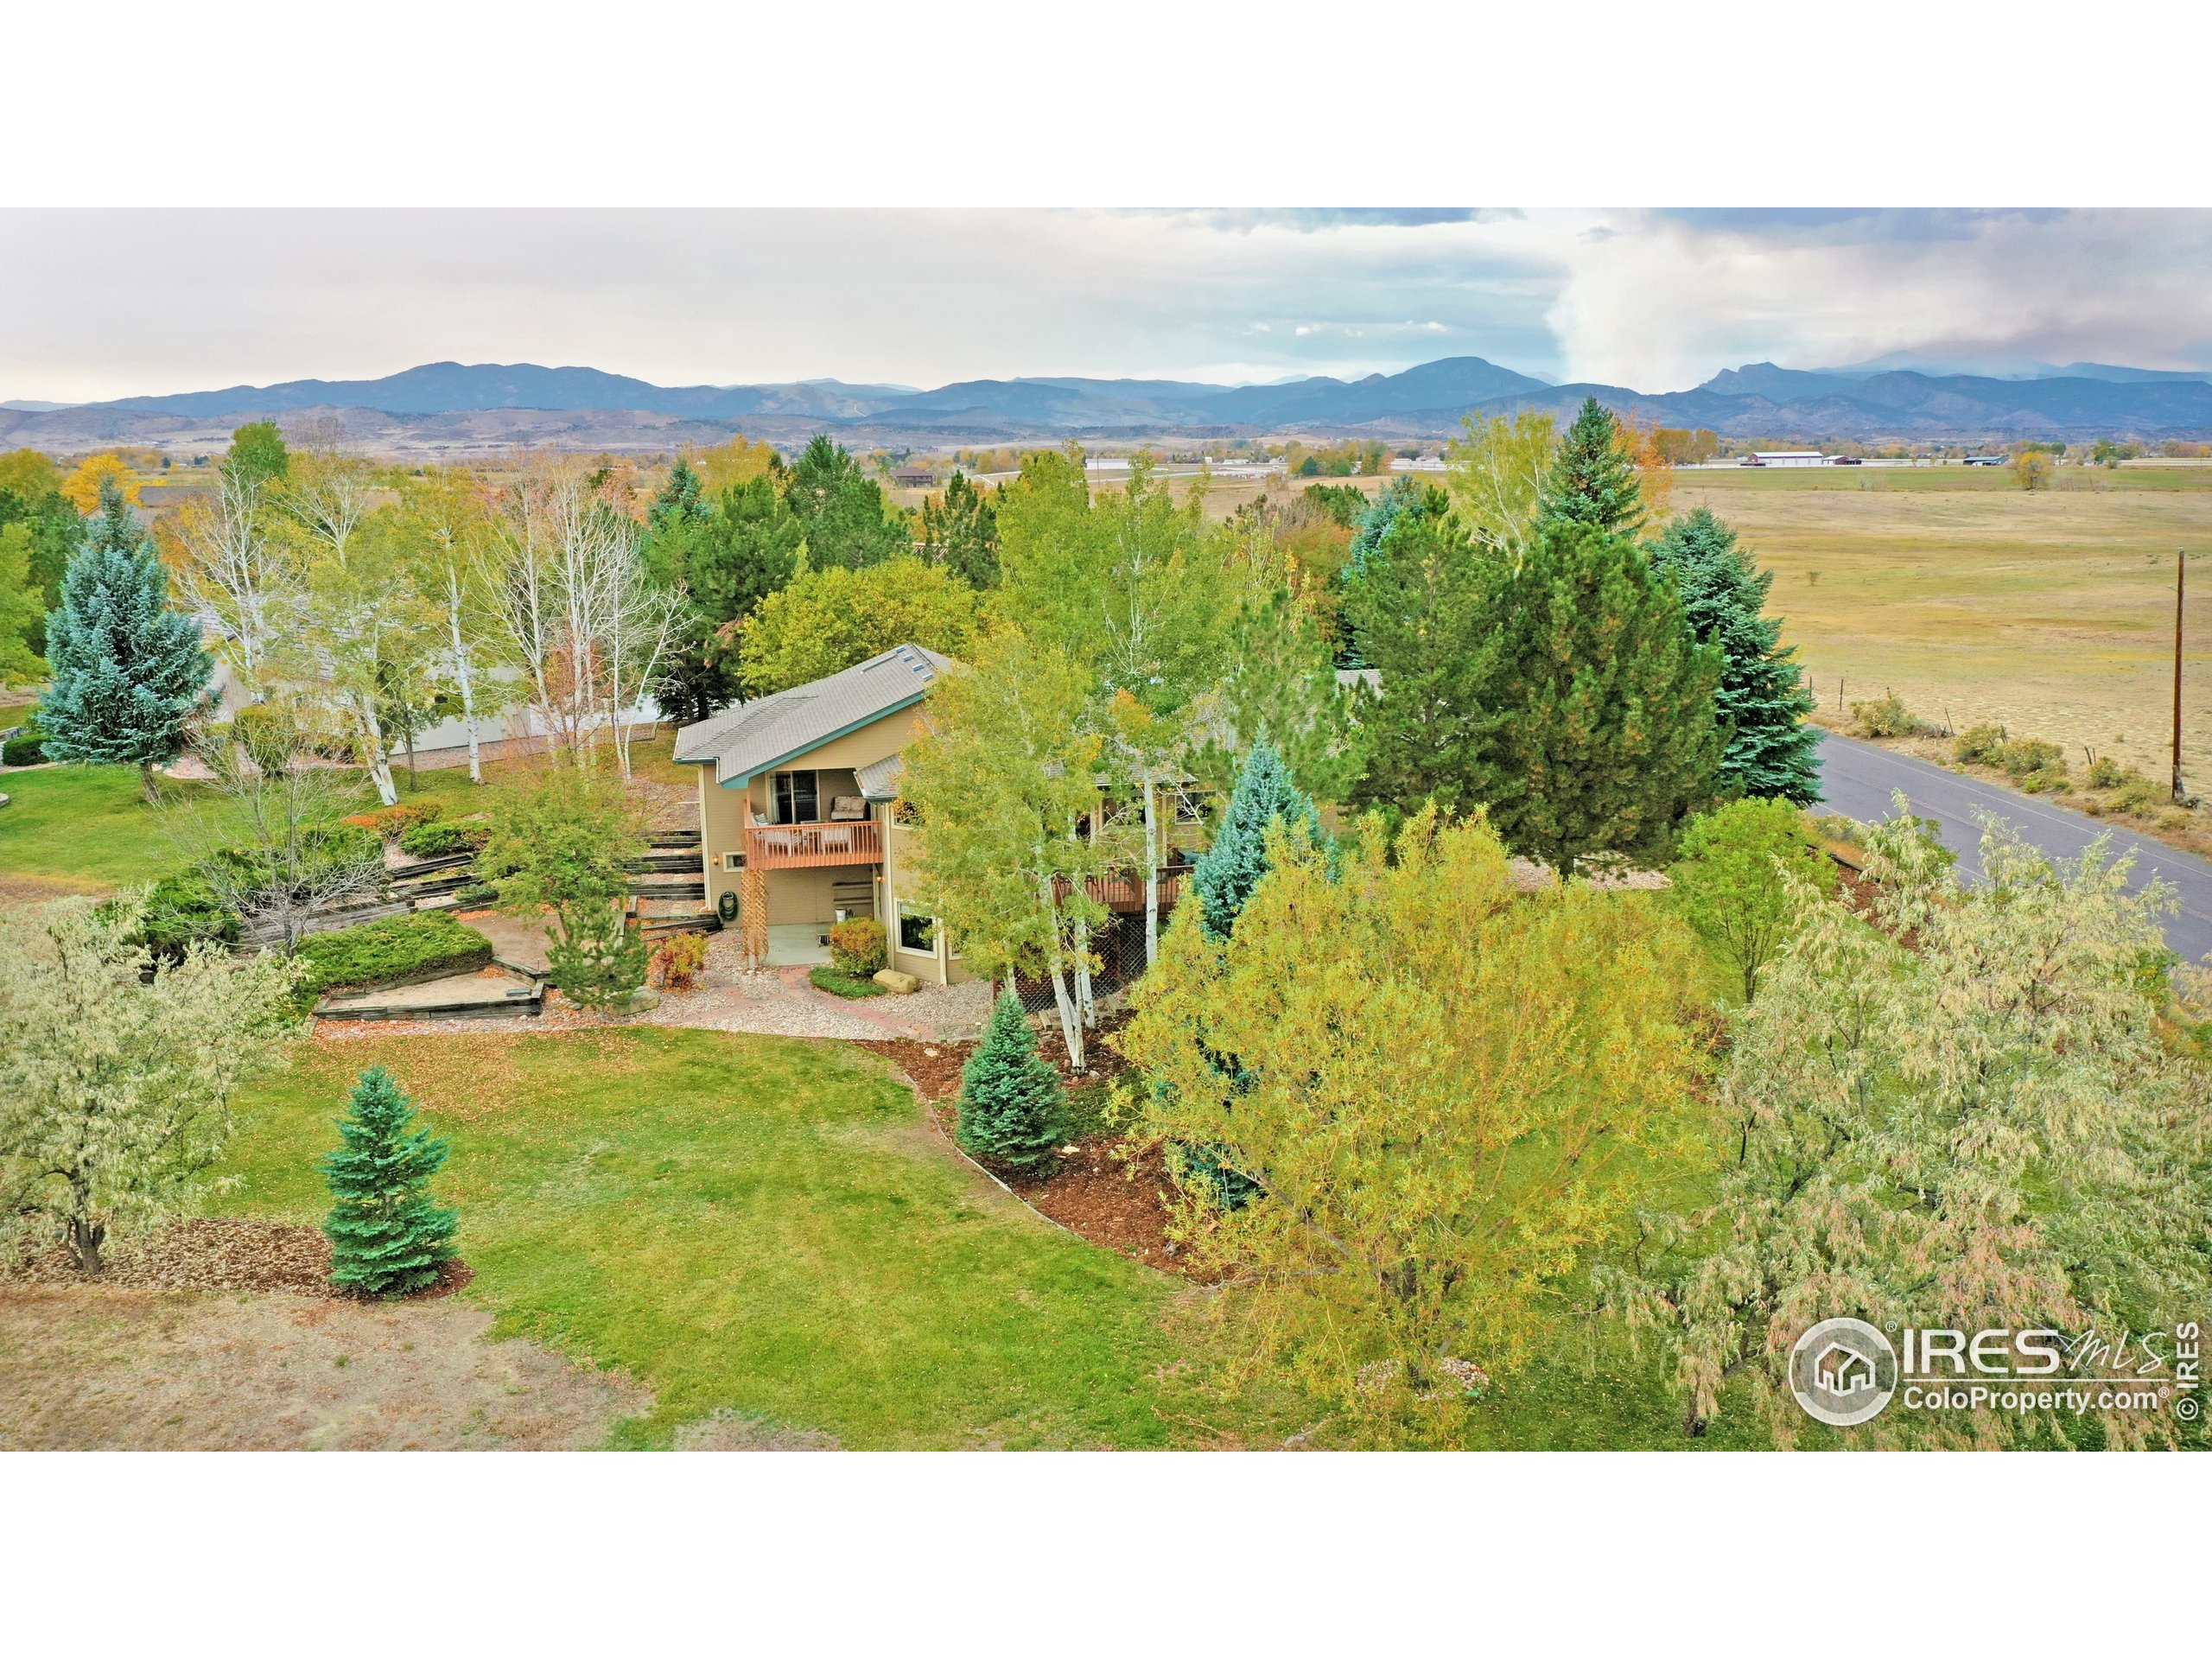 Absolutely wonderful custom built ranch home on over 1/2 acre on the edge of town. Located along County Road 16 on a dead end road with only this neighborhood's traffic. 4 bedrooms (2 main, 2 bsmt) and 4 baths including a master suite. Incredible access to the amazing views from the master suite, formal dining/living, informal dining/kitchen & the walk-out. So many great locations to take in the open space and country feel. Oversized garage is finished with an 8' 3rd bay door. Country in town!